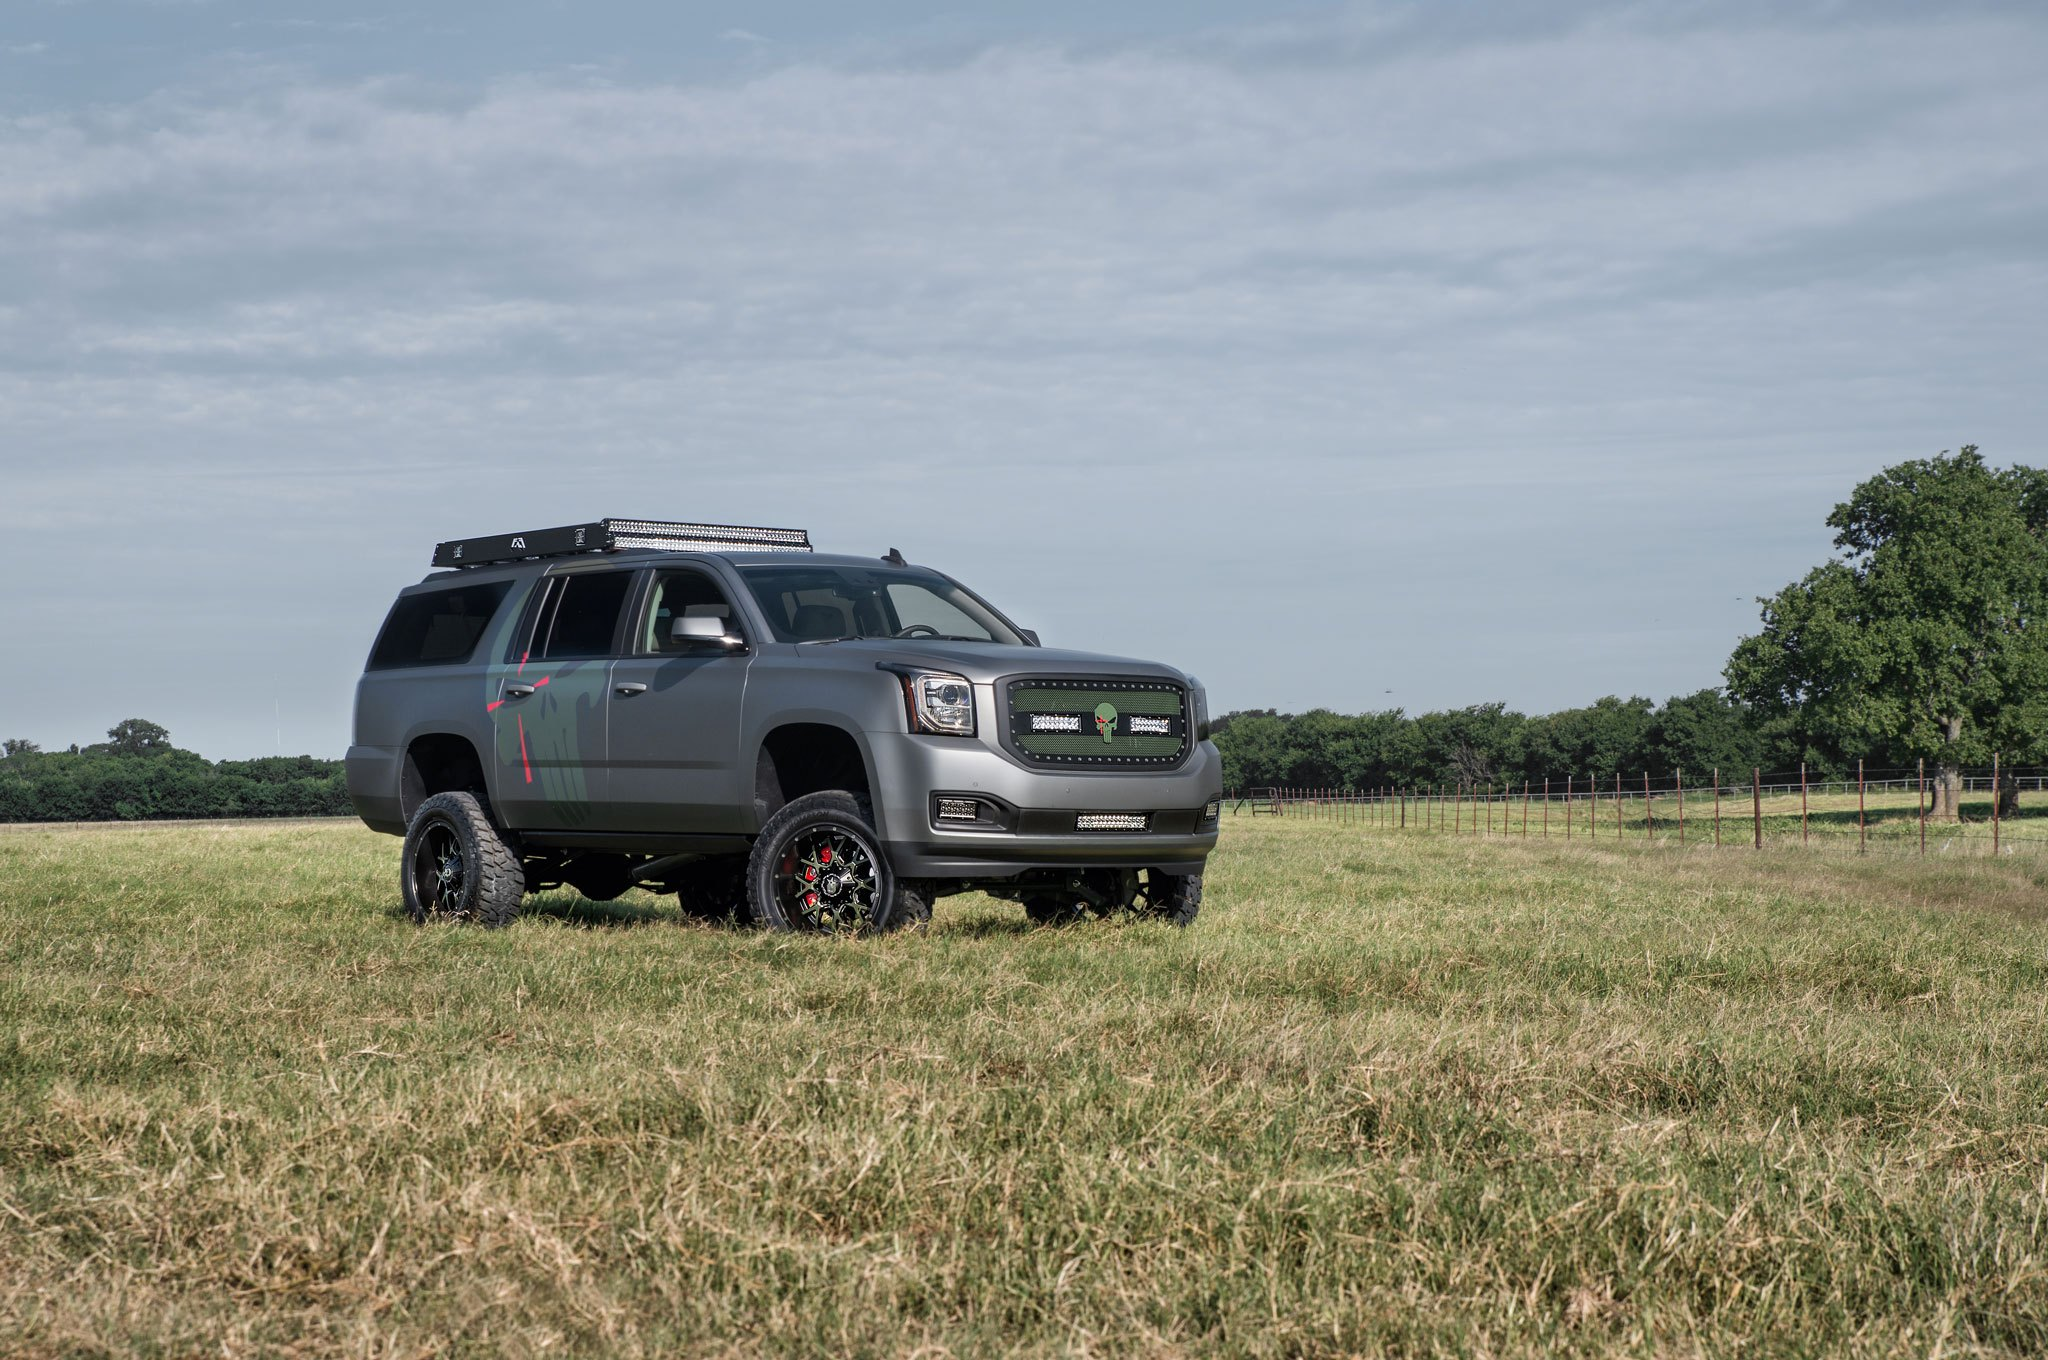 Gmc Yukon XL On 35 Inch Tires   Photo By Complete Customs